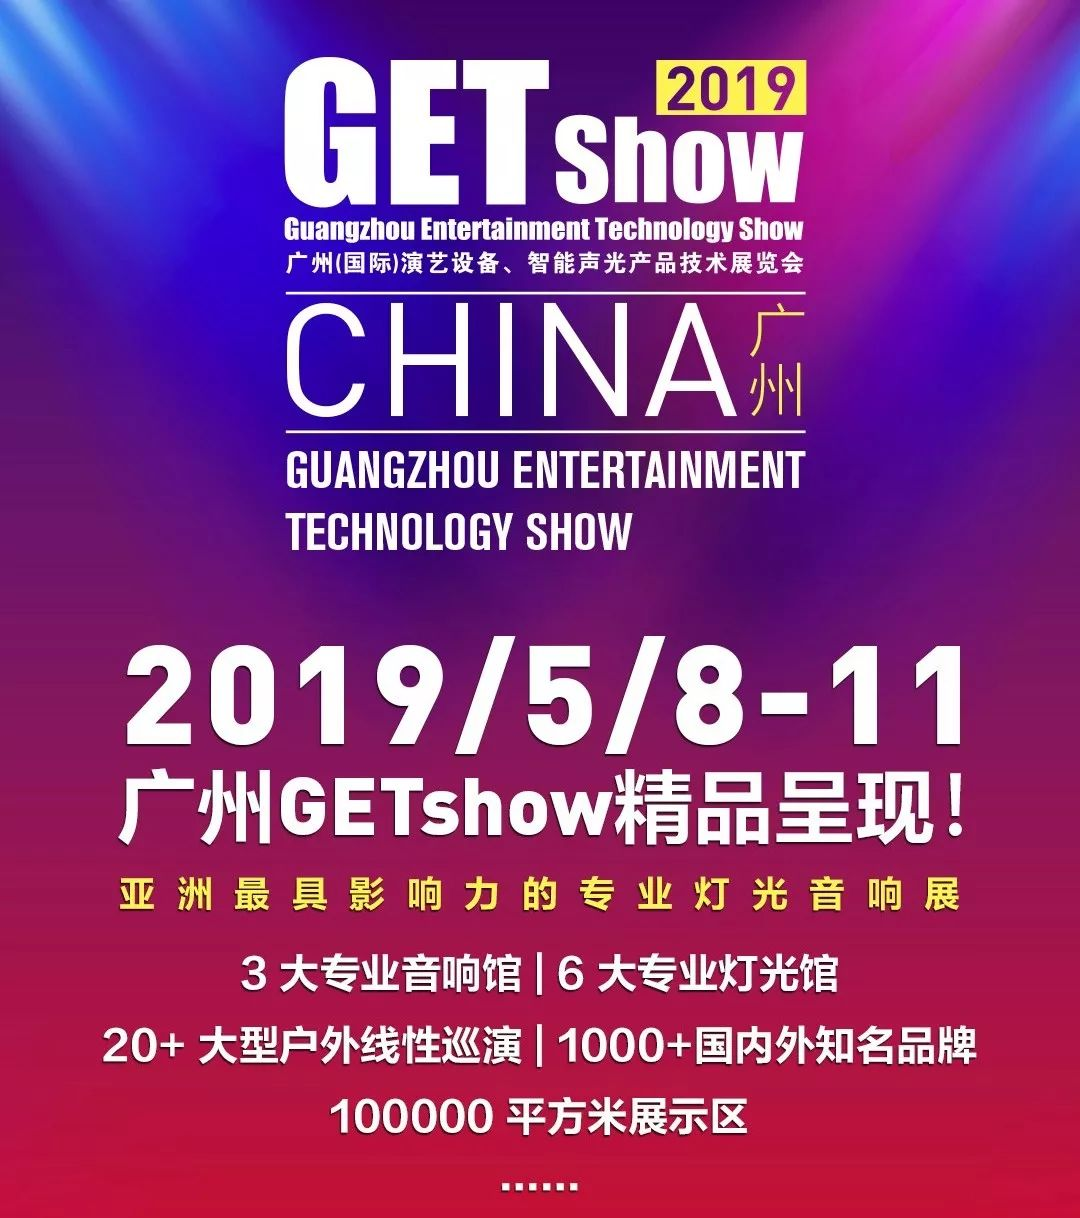 GETshow2019--We are looking forword to meeting you tomorrow at booth C3-06A